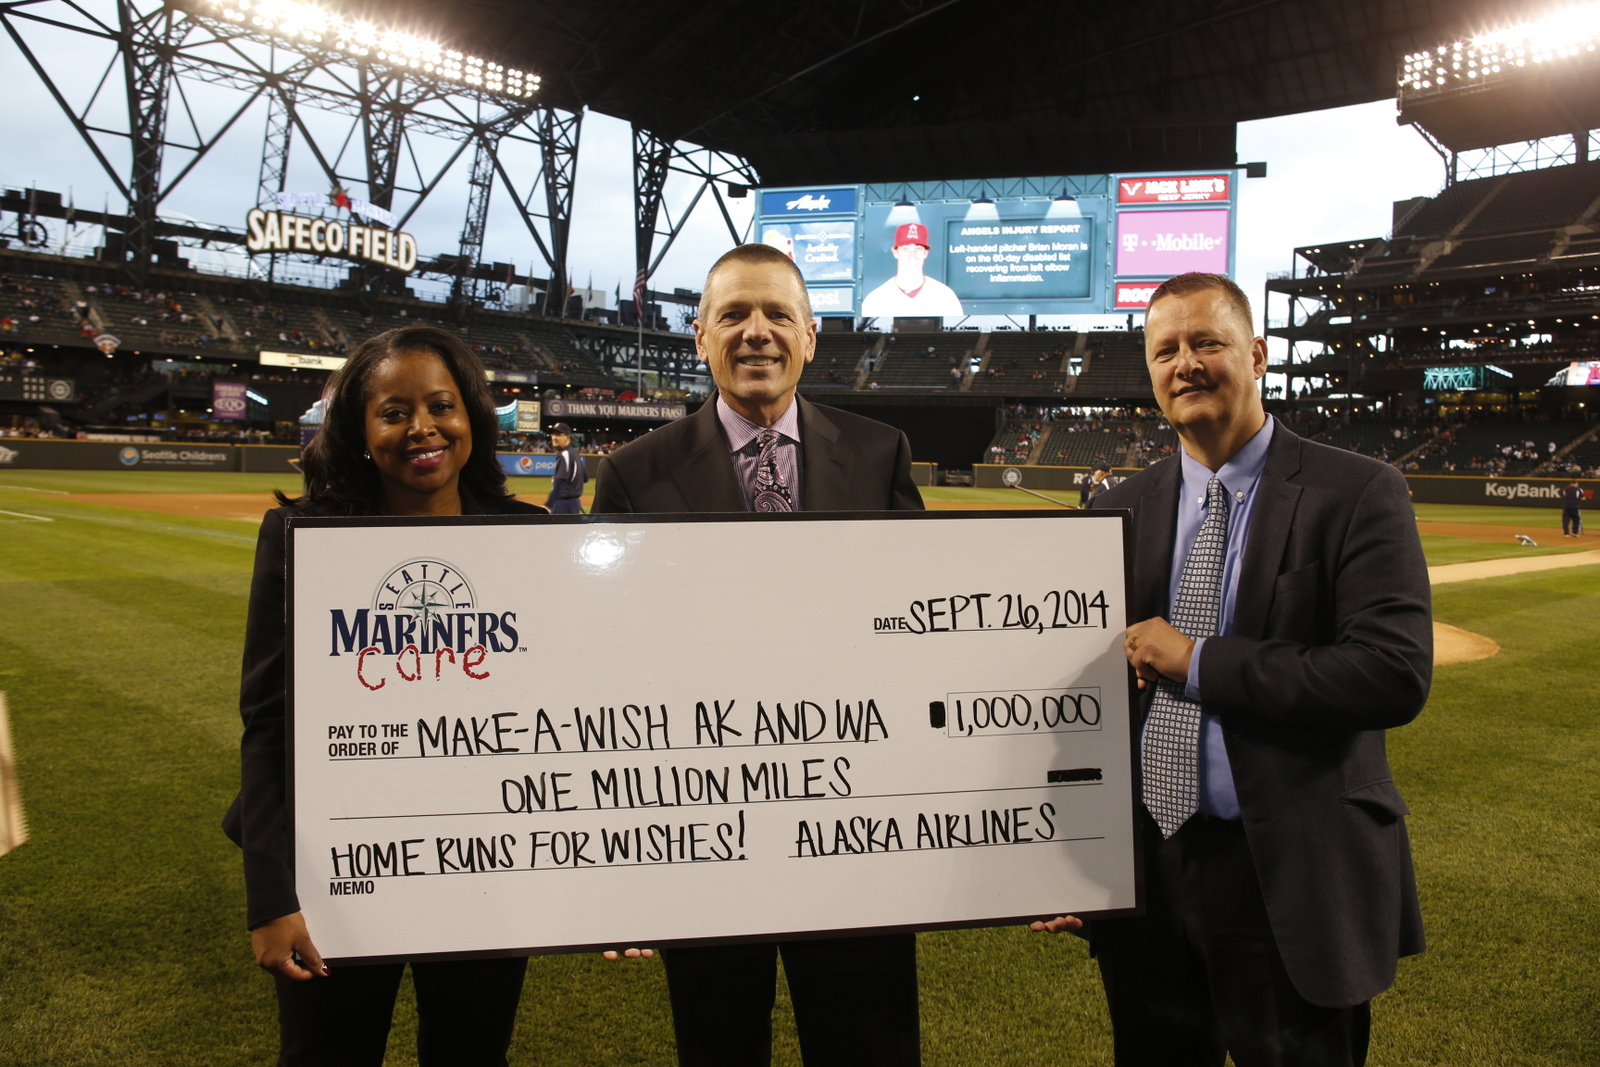 Alaska Airlines' Shaunta Hyde presents 1 million miles to Barry McConnell, Make-a-Wish Alaska and Washington chapter president and CEO, and Make-A-Wish board chair Mitch Hansen before a Mariners game on Friday, Sept. 26.